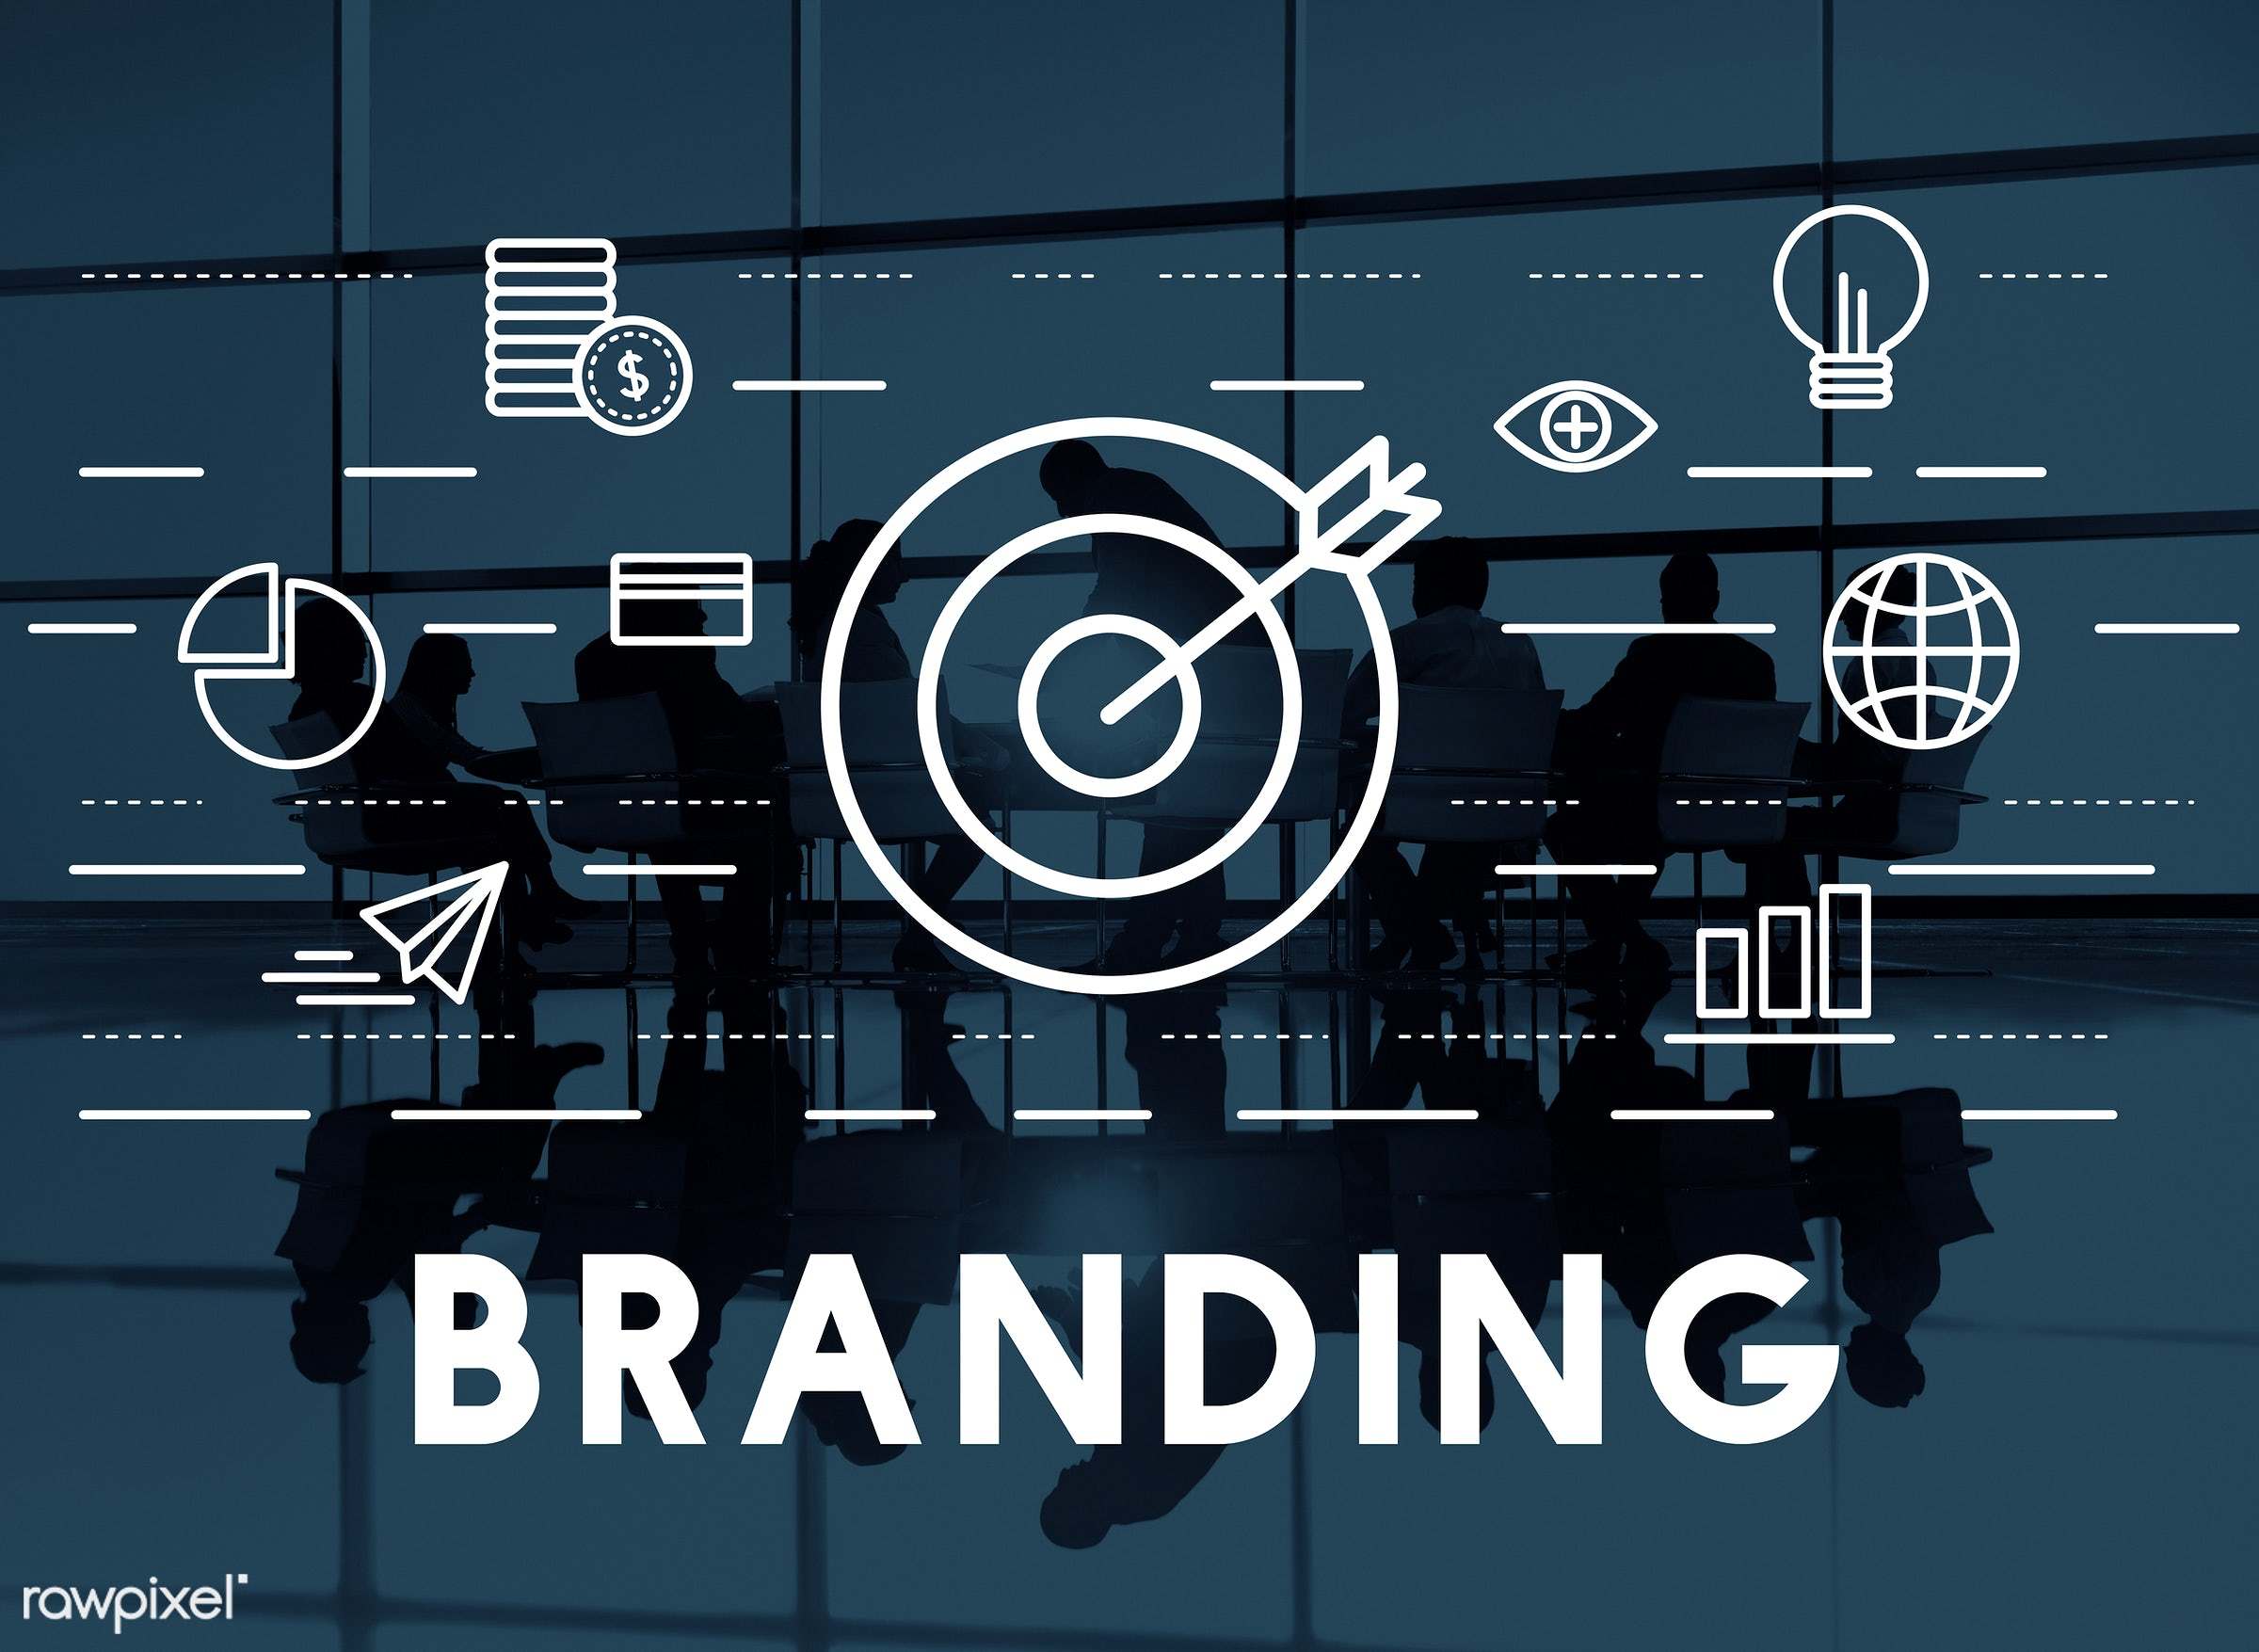 branding, brand, value, office, product, advertising, badge, boardroom, brainstorming, brand name, business, business people...